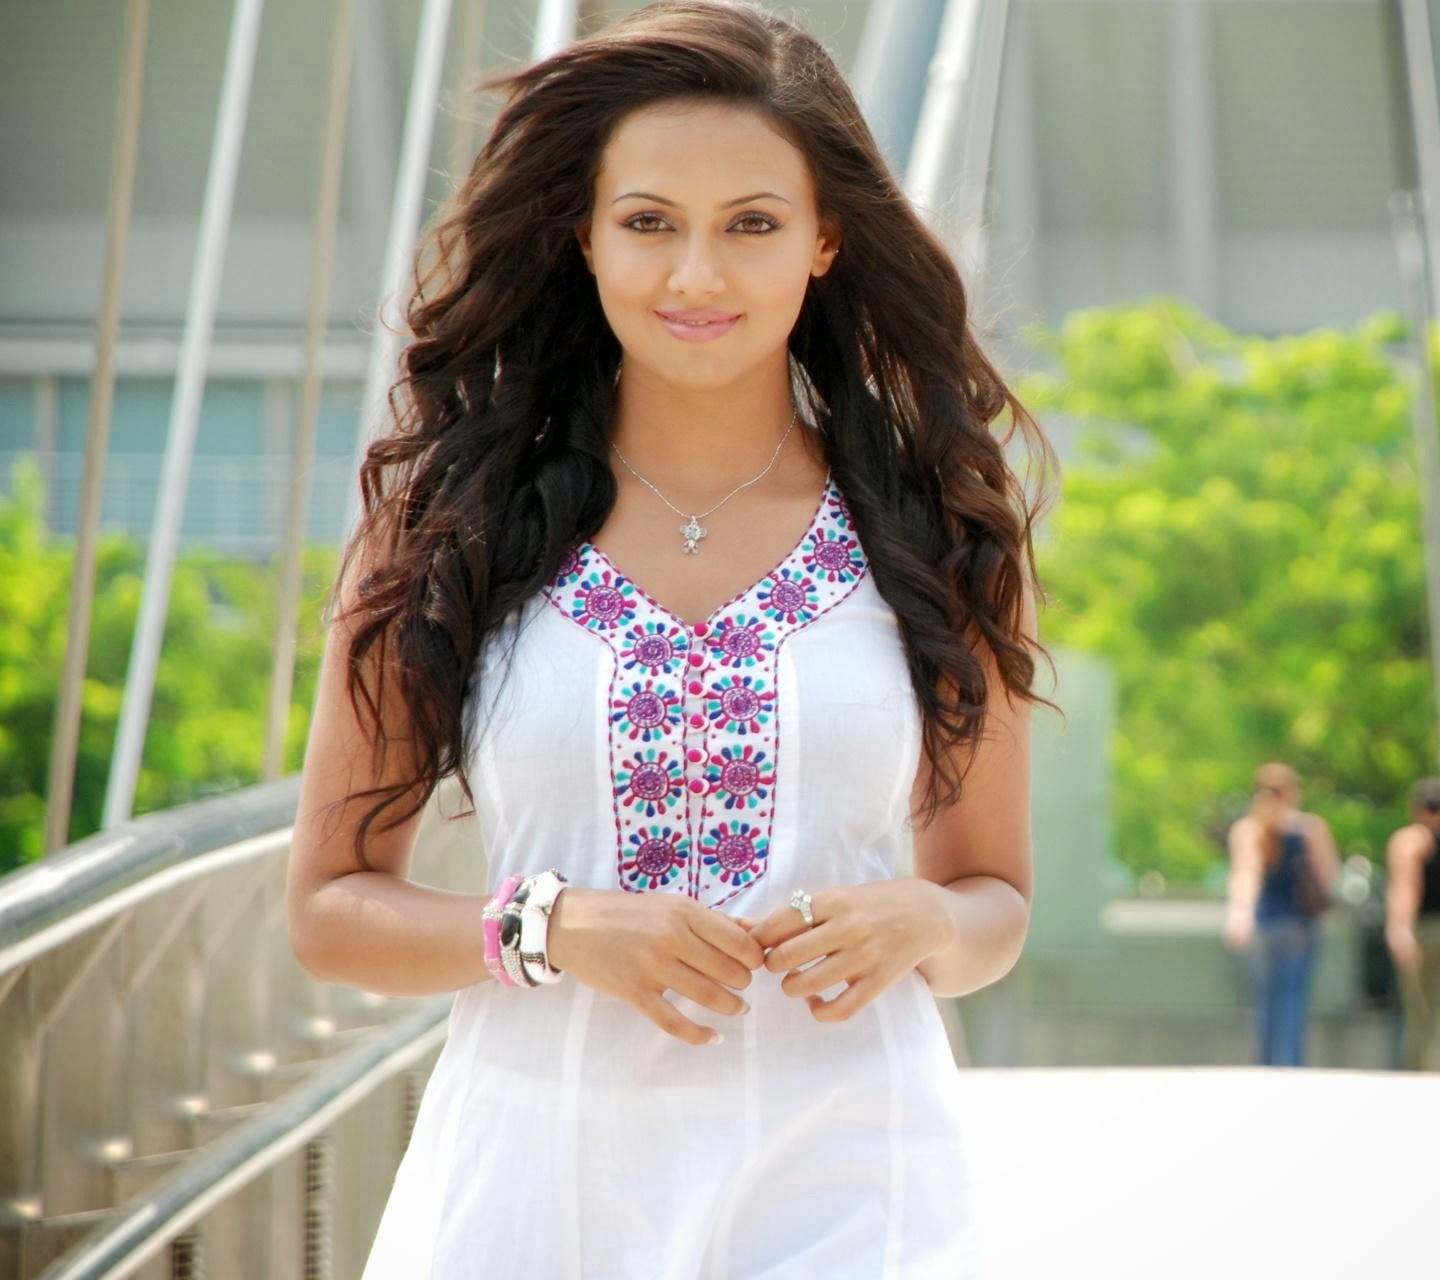 Amazing Sana Khan Beautiful Look Mobile Desktop Hd Background 1440x1280